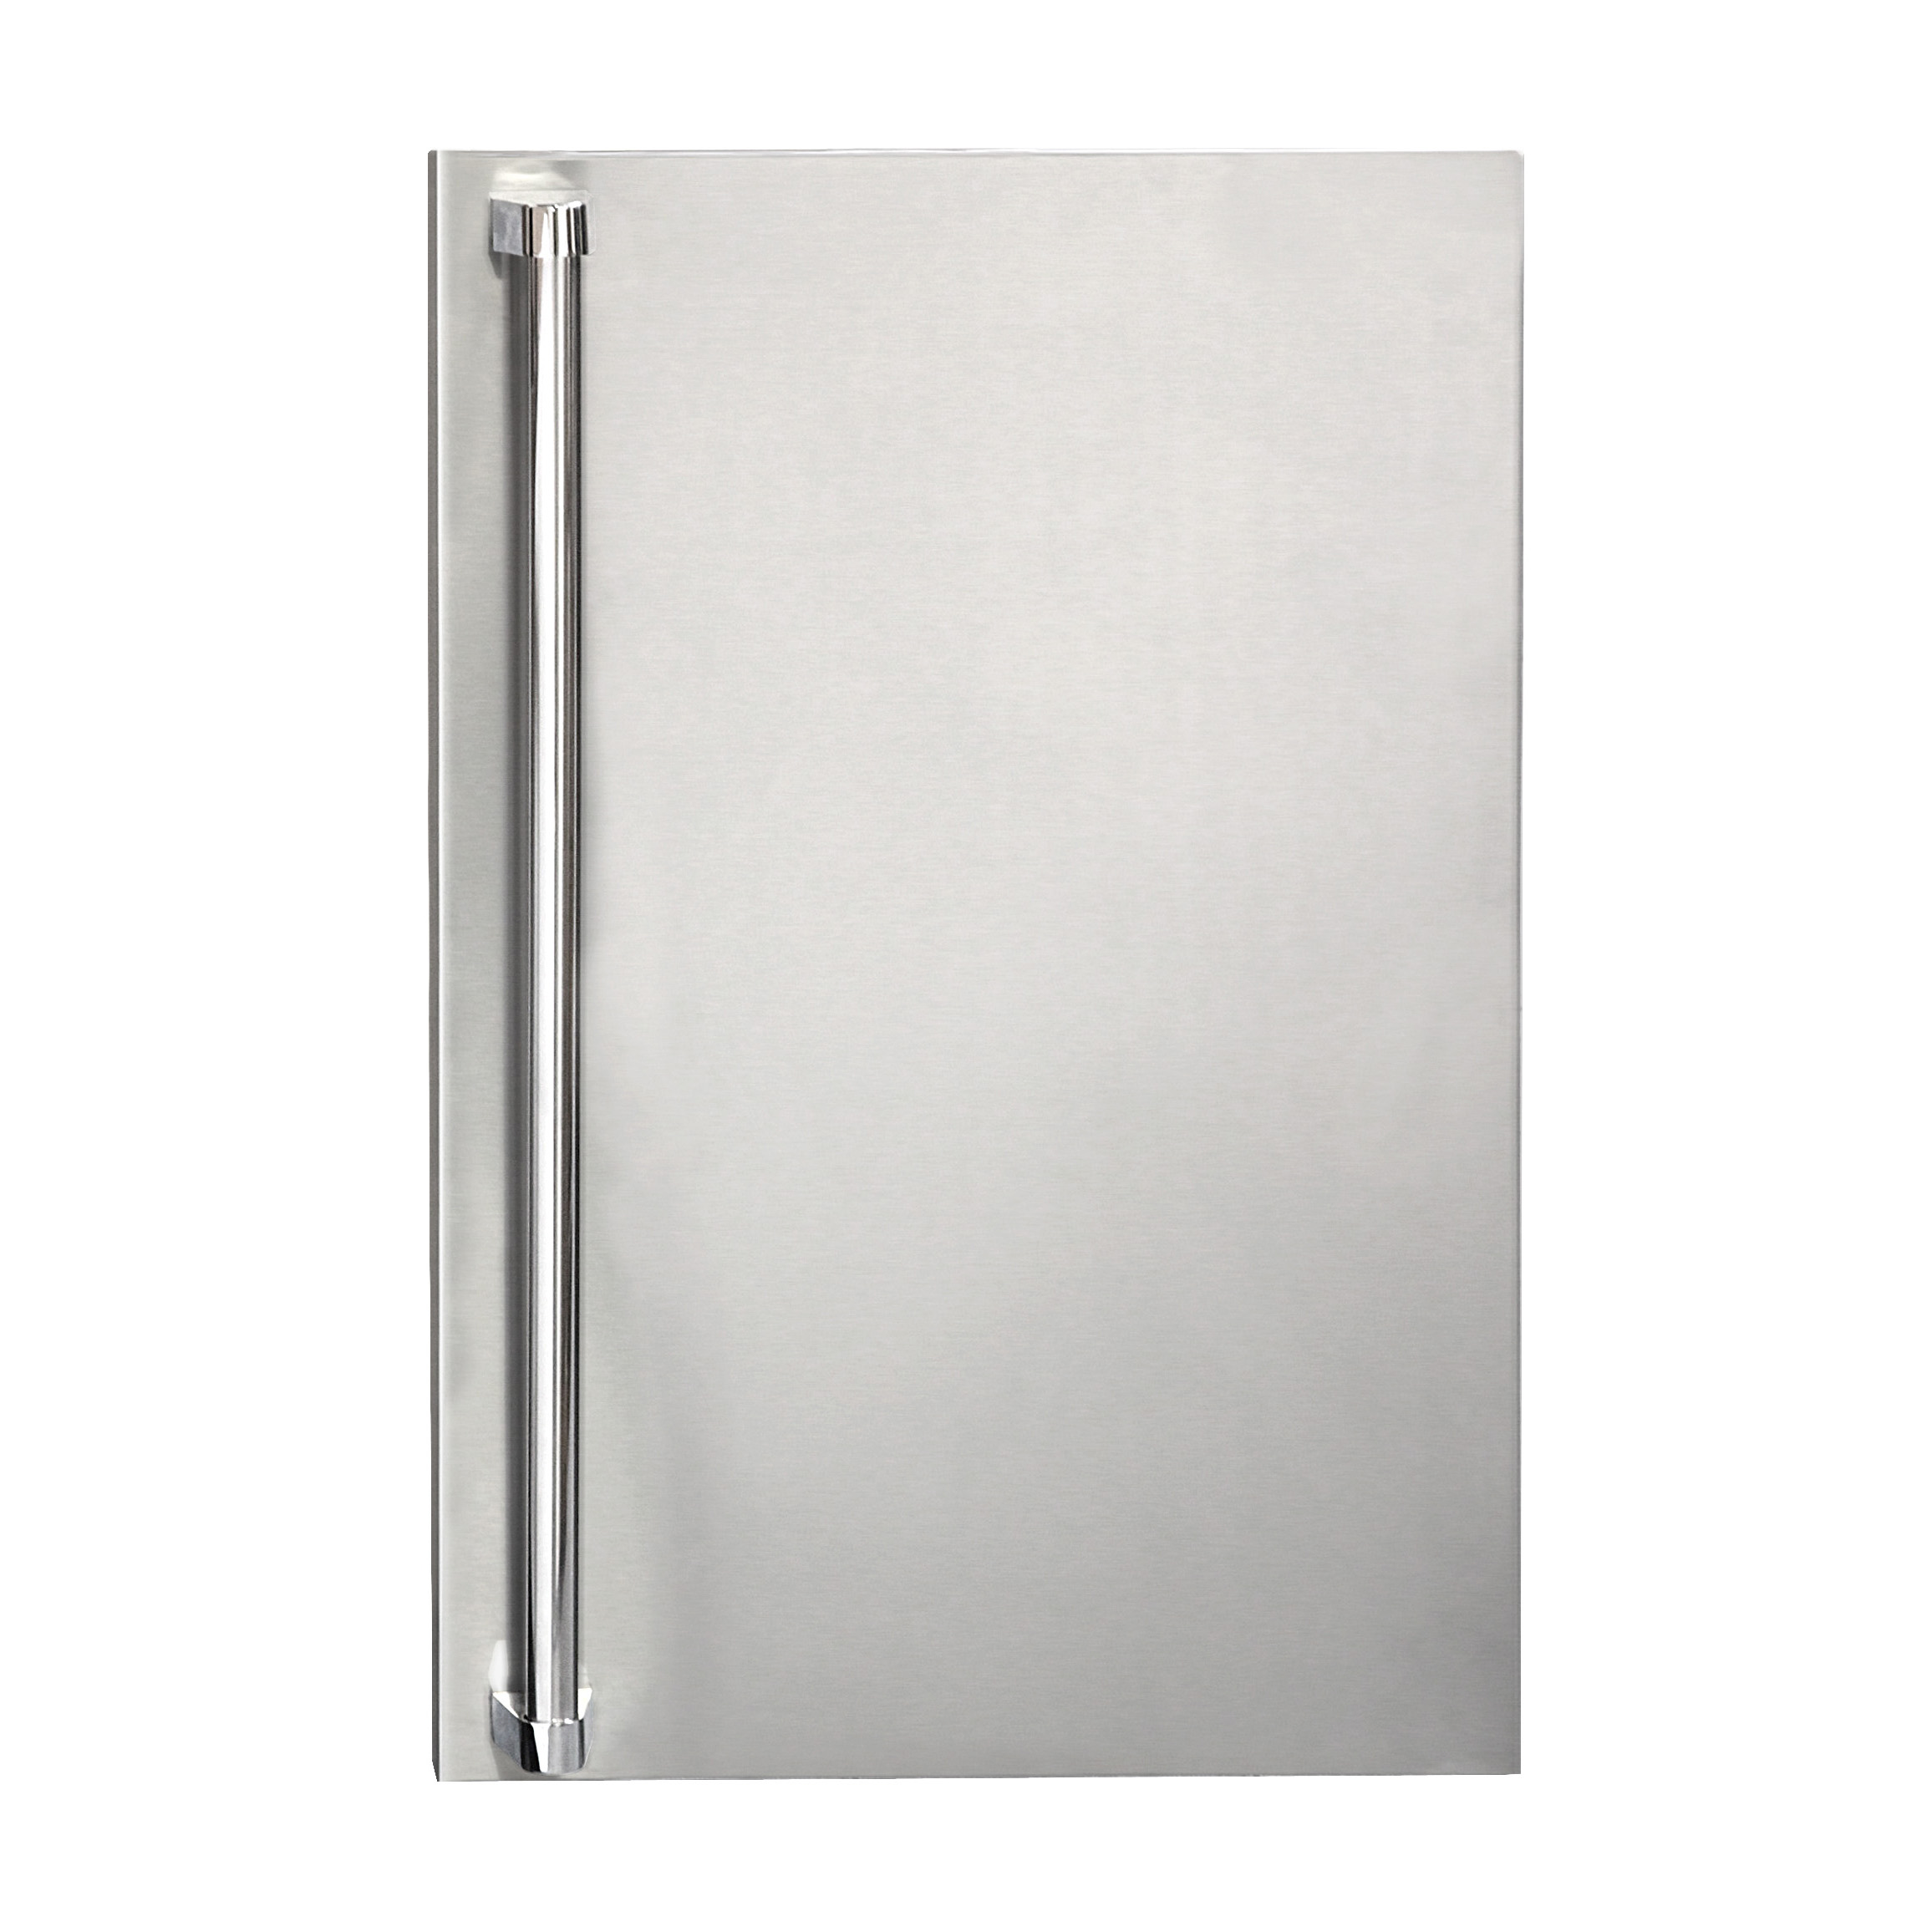 Summerset Stainless Steel Refrigerator Door Sleeve Upgrade SSRSL-1 - TheGrillFather.com